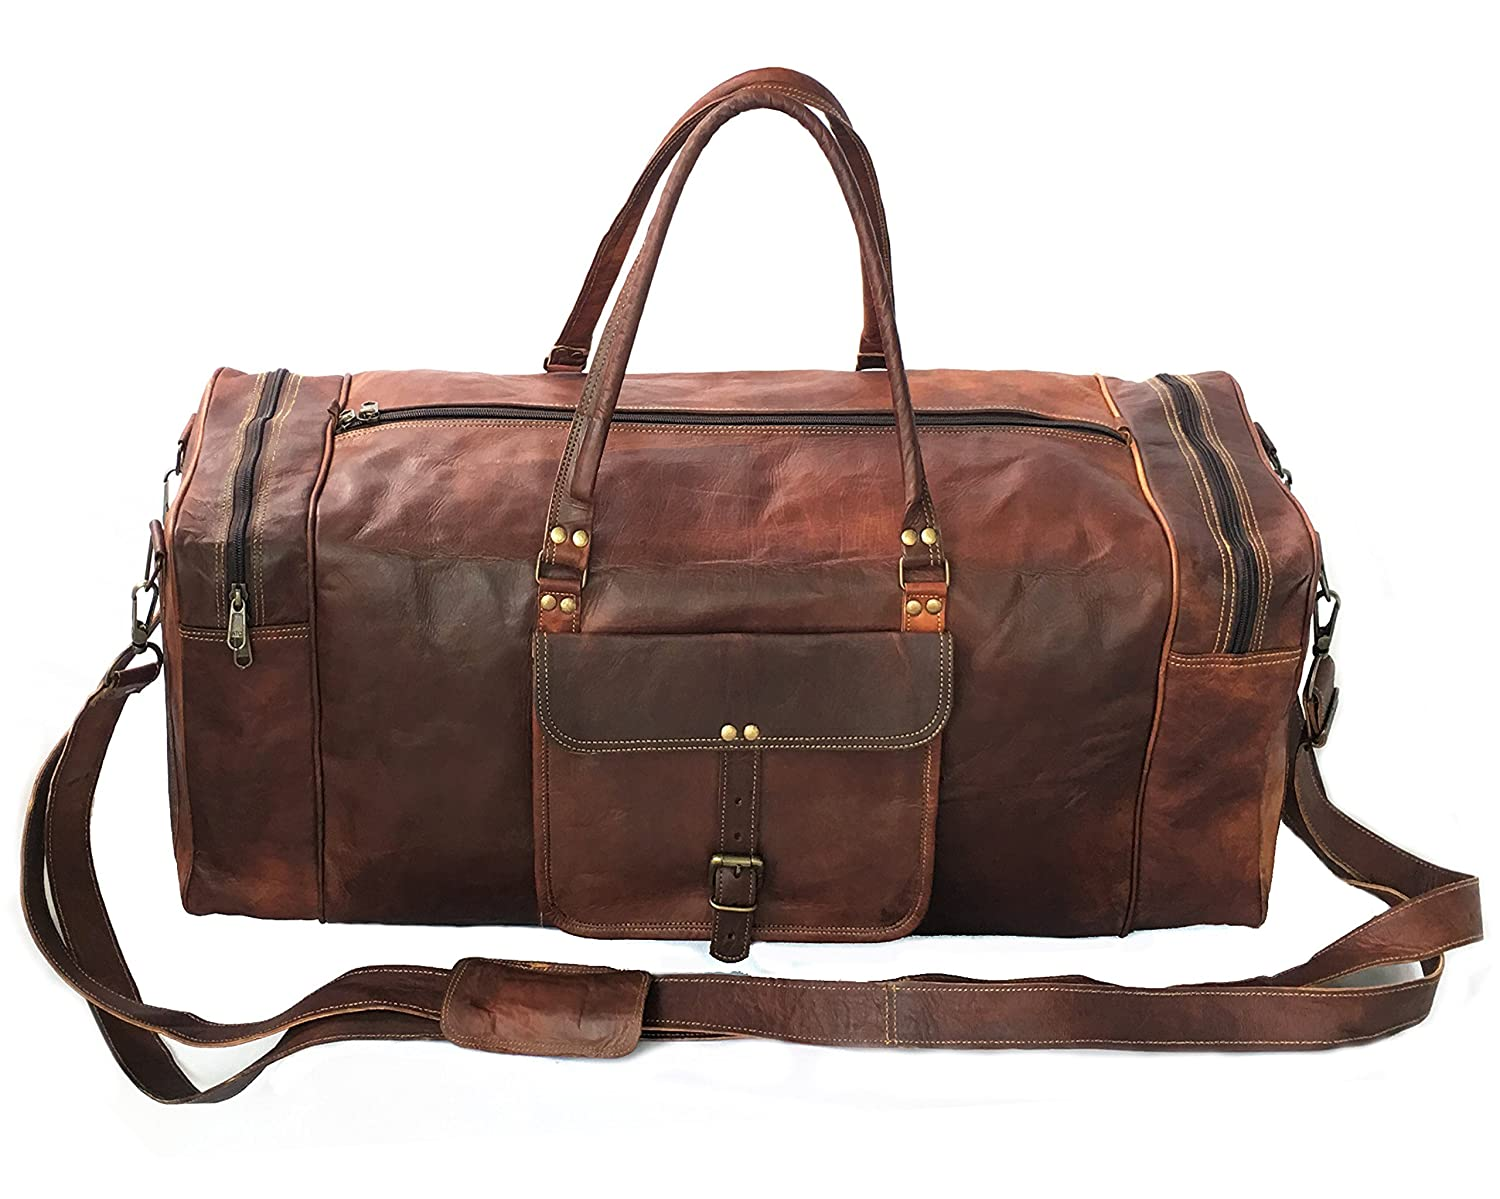 BROCODE 28 Inch Real Goat Vintage Leather Large Handmade Travel Luggage Bags in Square Big Large Brown bag Carry On